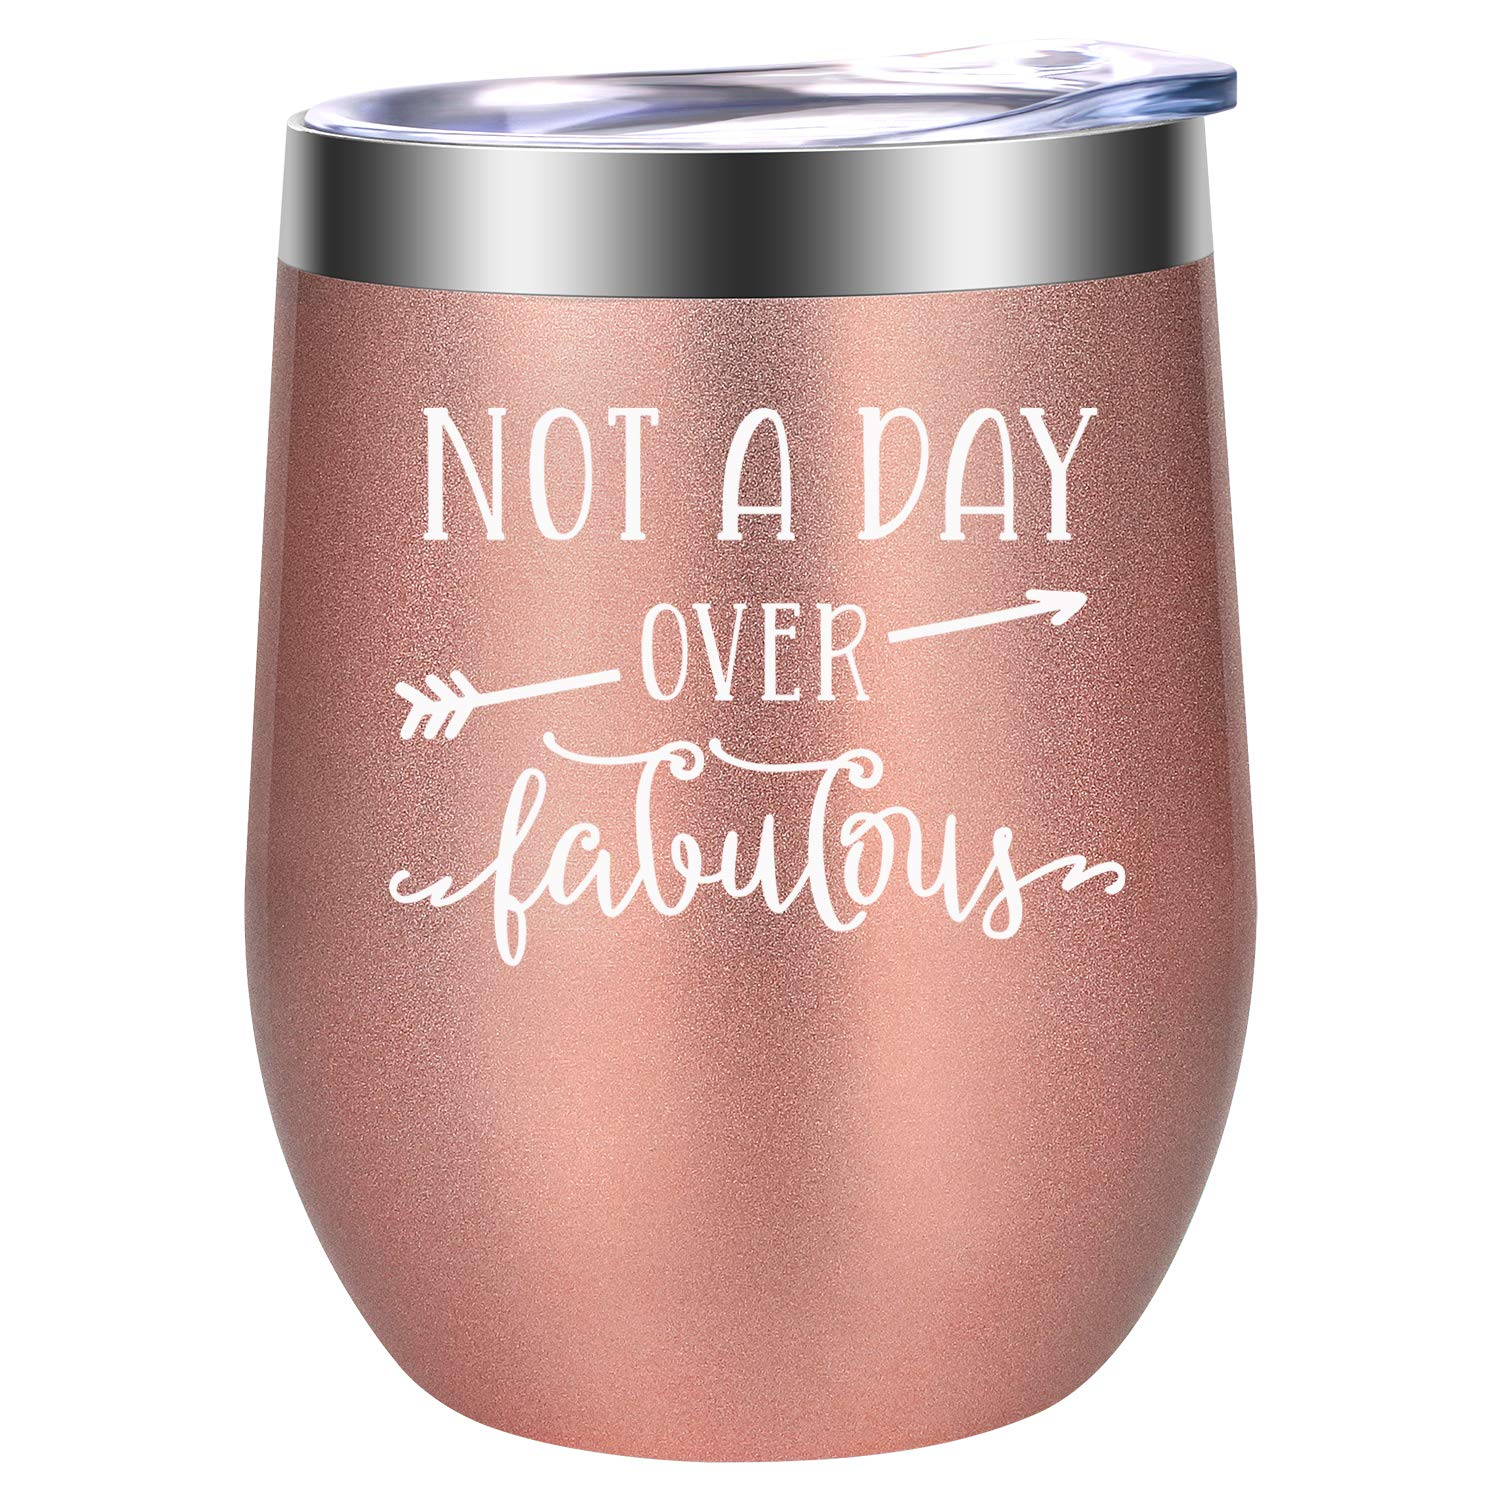 Not a Day Over Fabulous - Fun Birthday Gifts for Women - Funny Birthday Wine Gift Ideas for Her, Best Friend BFF, Mom, Grandma, Wife, Daughter, Sister, Aunt, Coworker - LEADO Birthday Wine Tumbler by LEADO (Image #1)